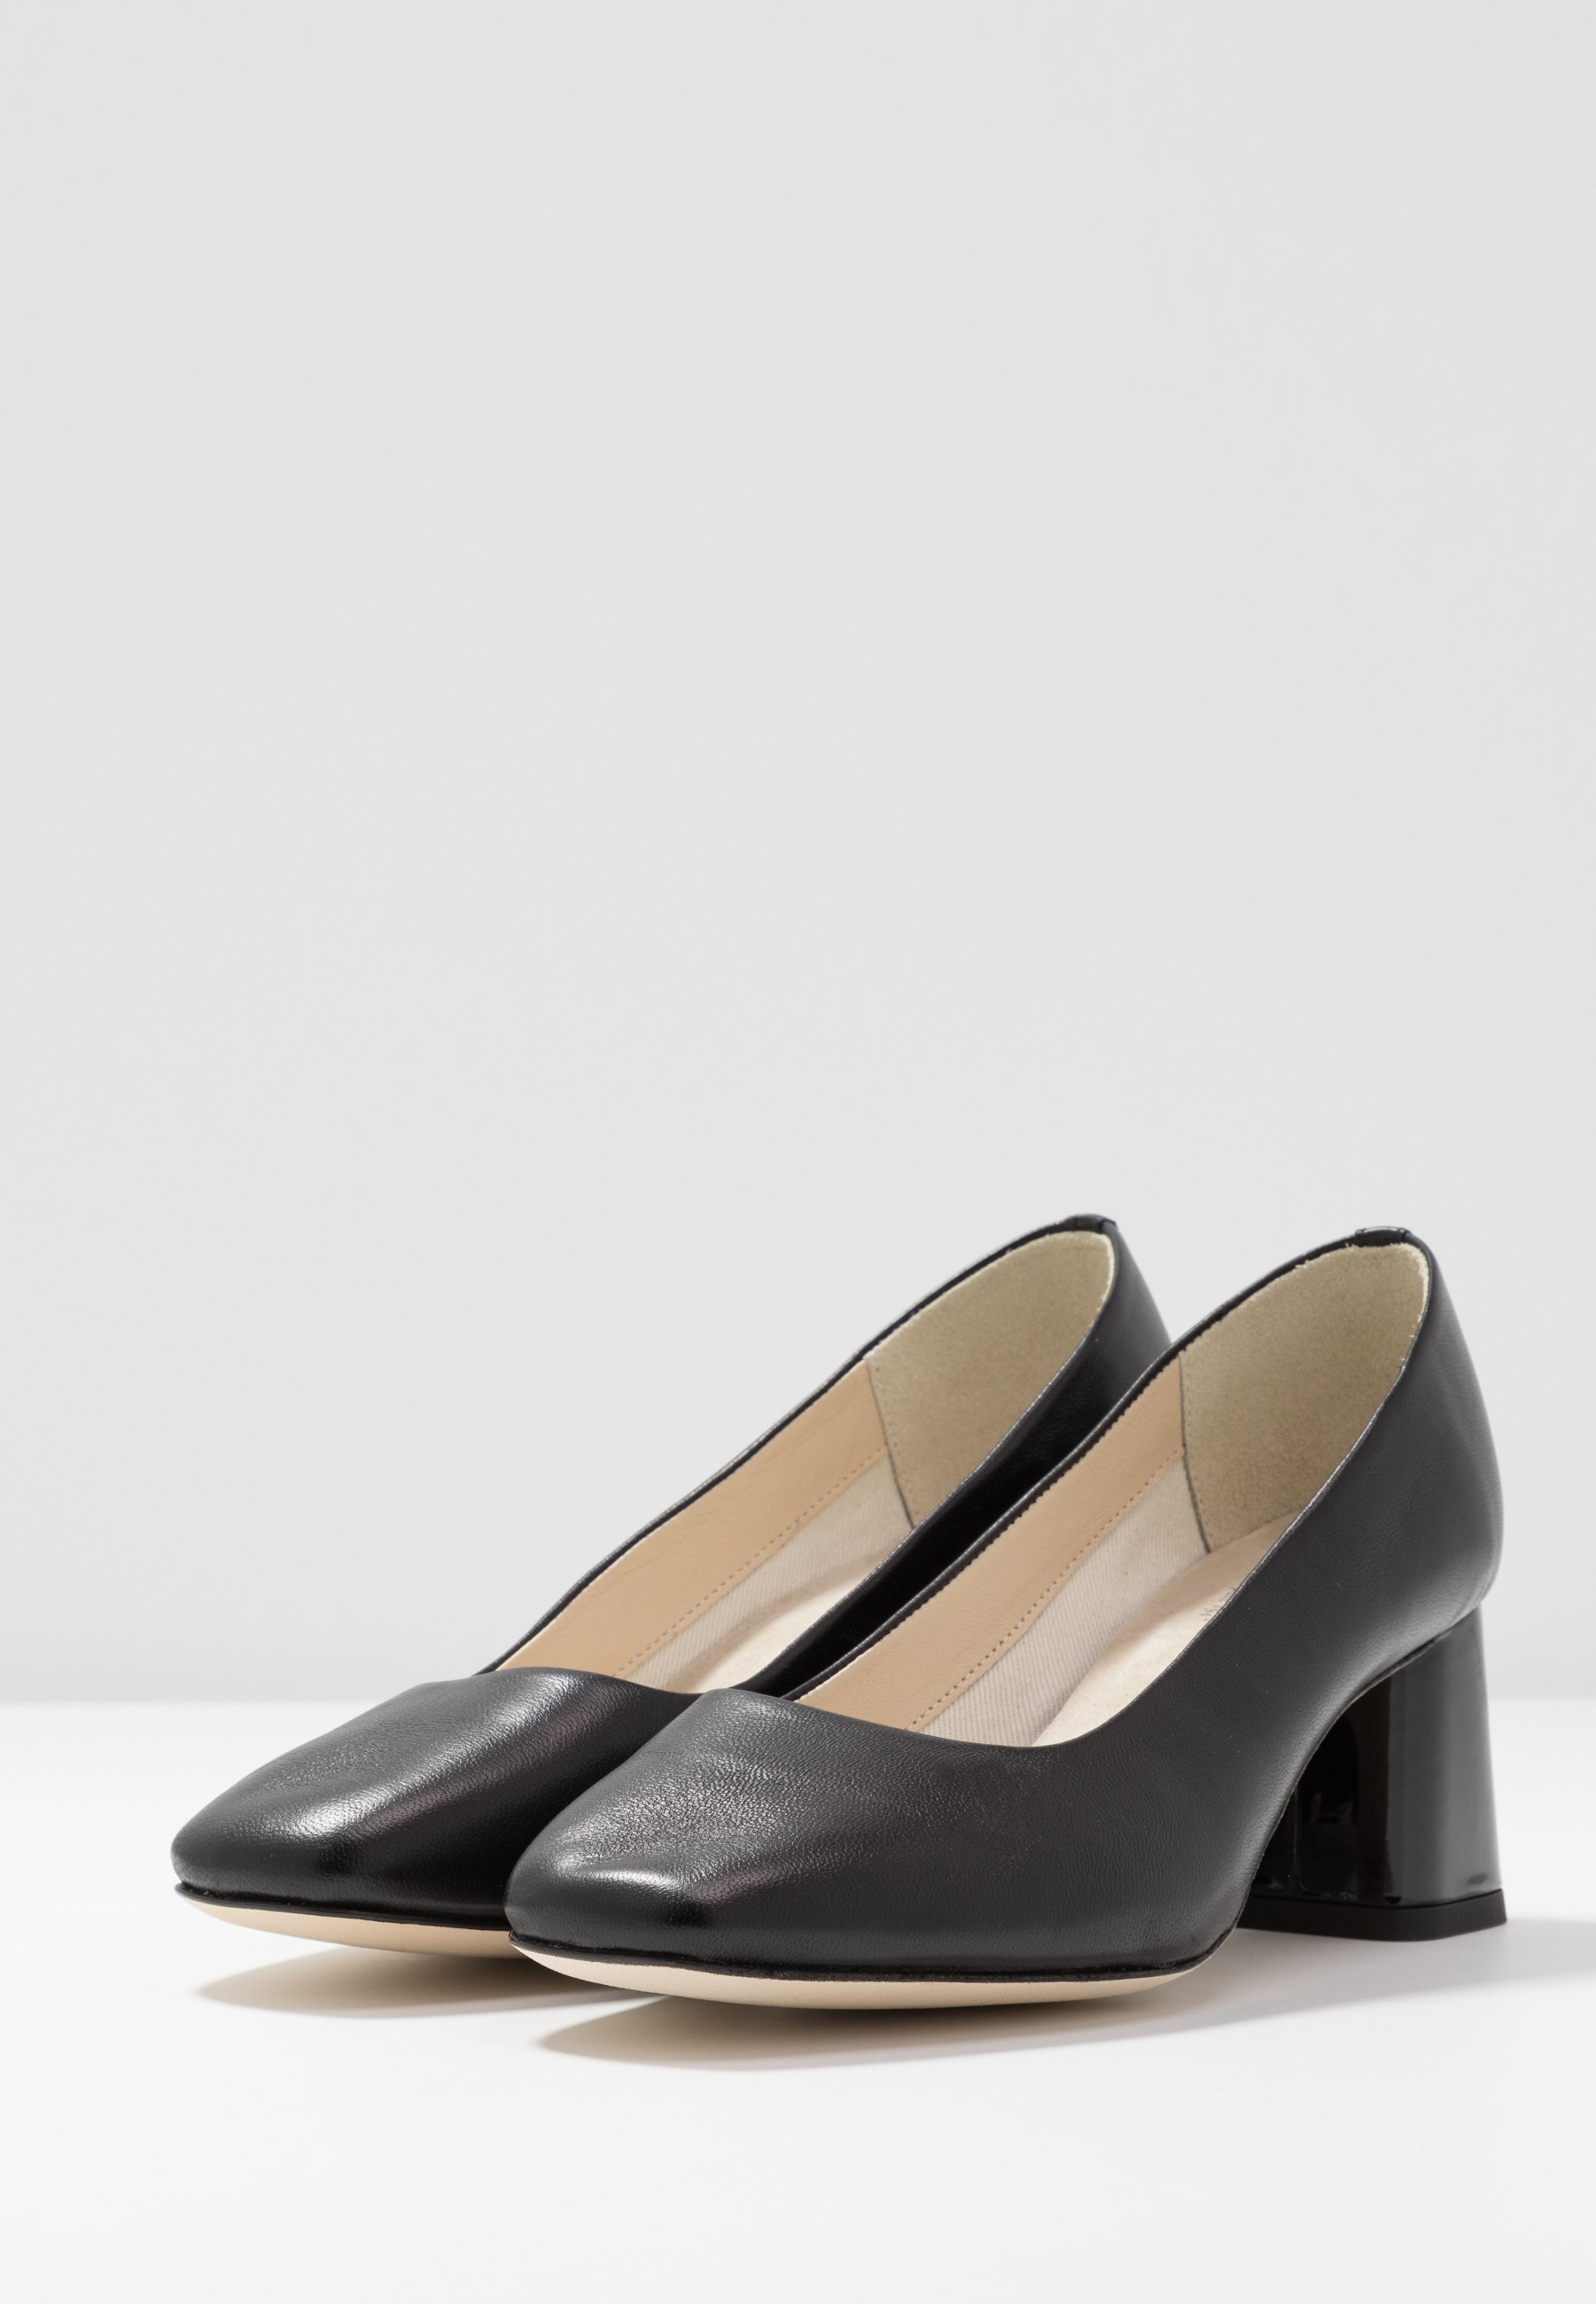 Repetto Marlow - Decolleté Noir 3e6b4